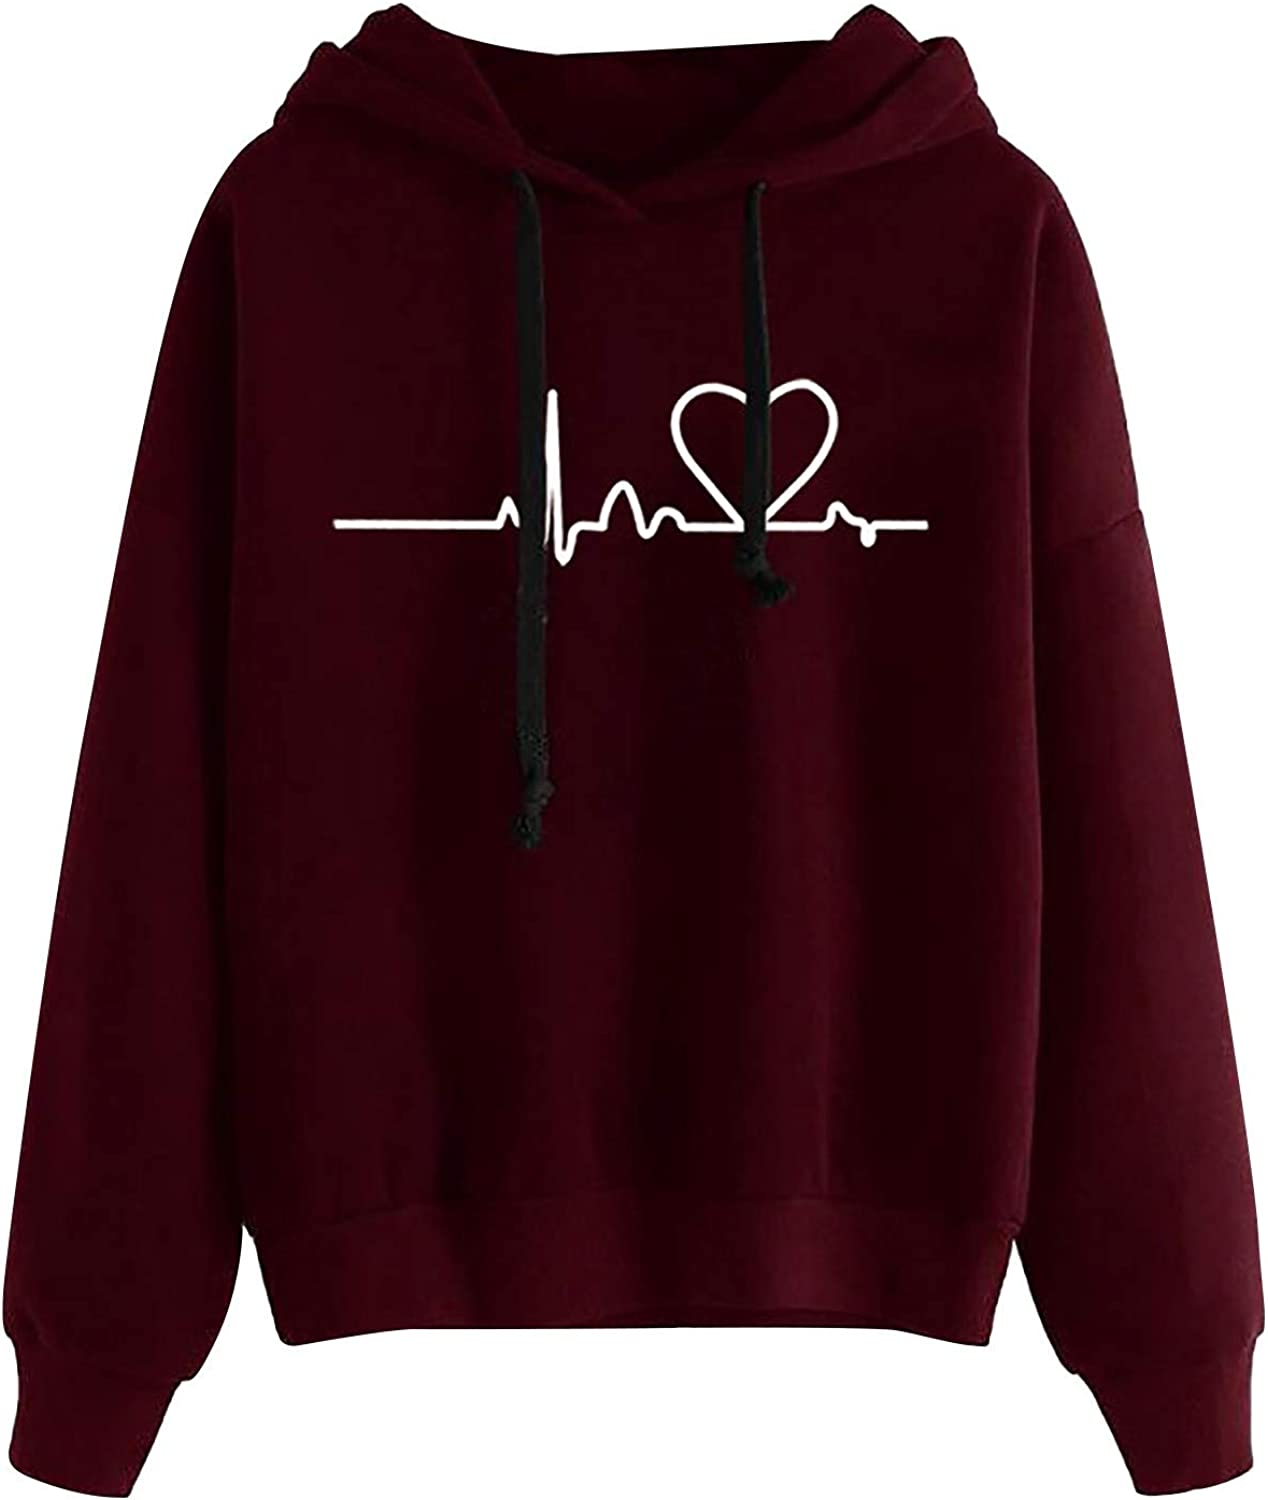 AODONG Hoodies for Womens Long Sleeves Cute Electrocardiogram Printed Hooded Sweater Pullover Tops